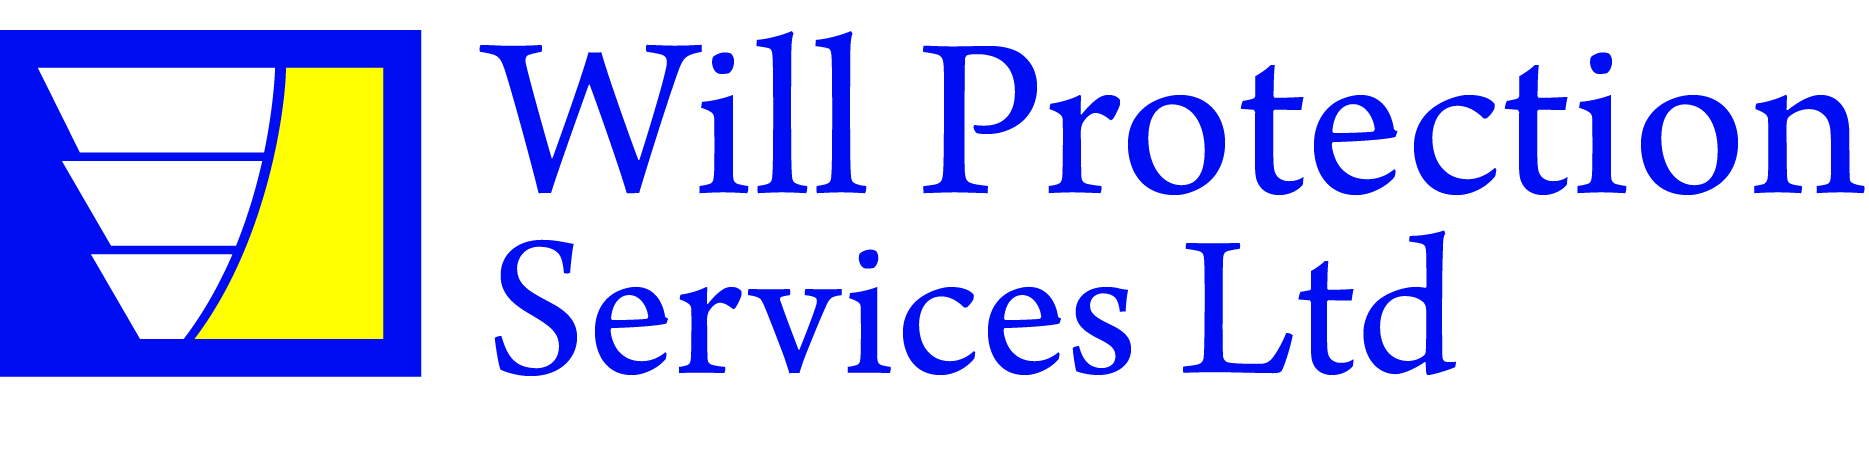 Will Protection Services Ltd